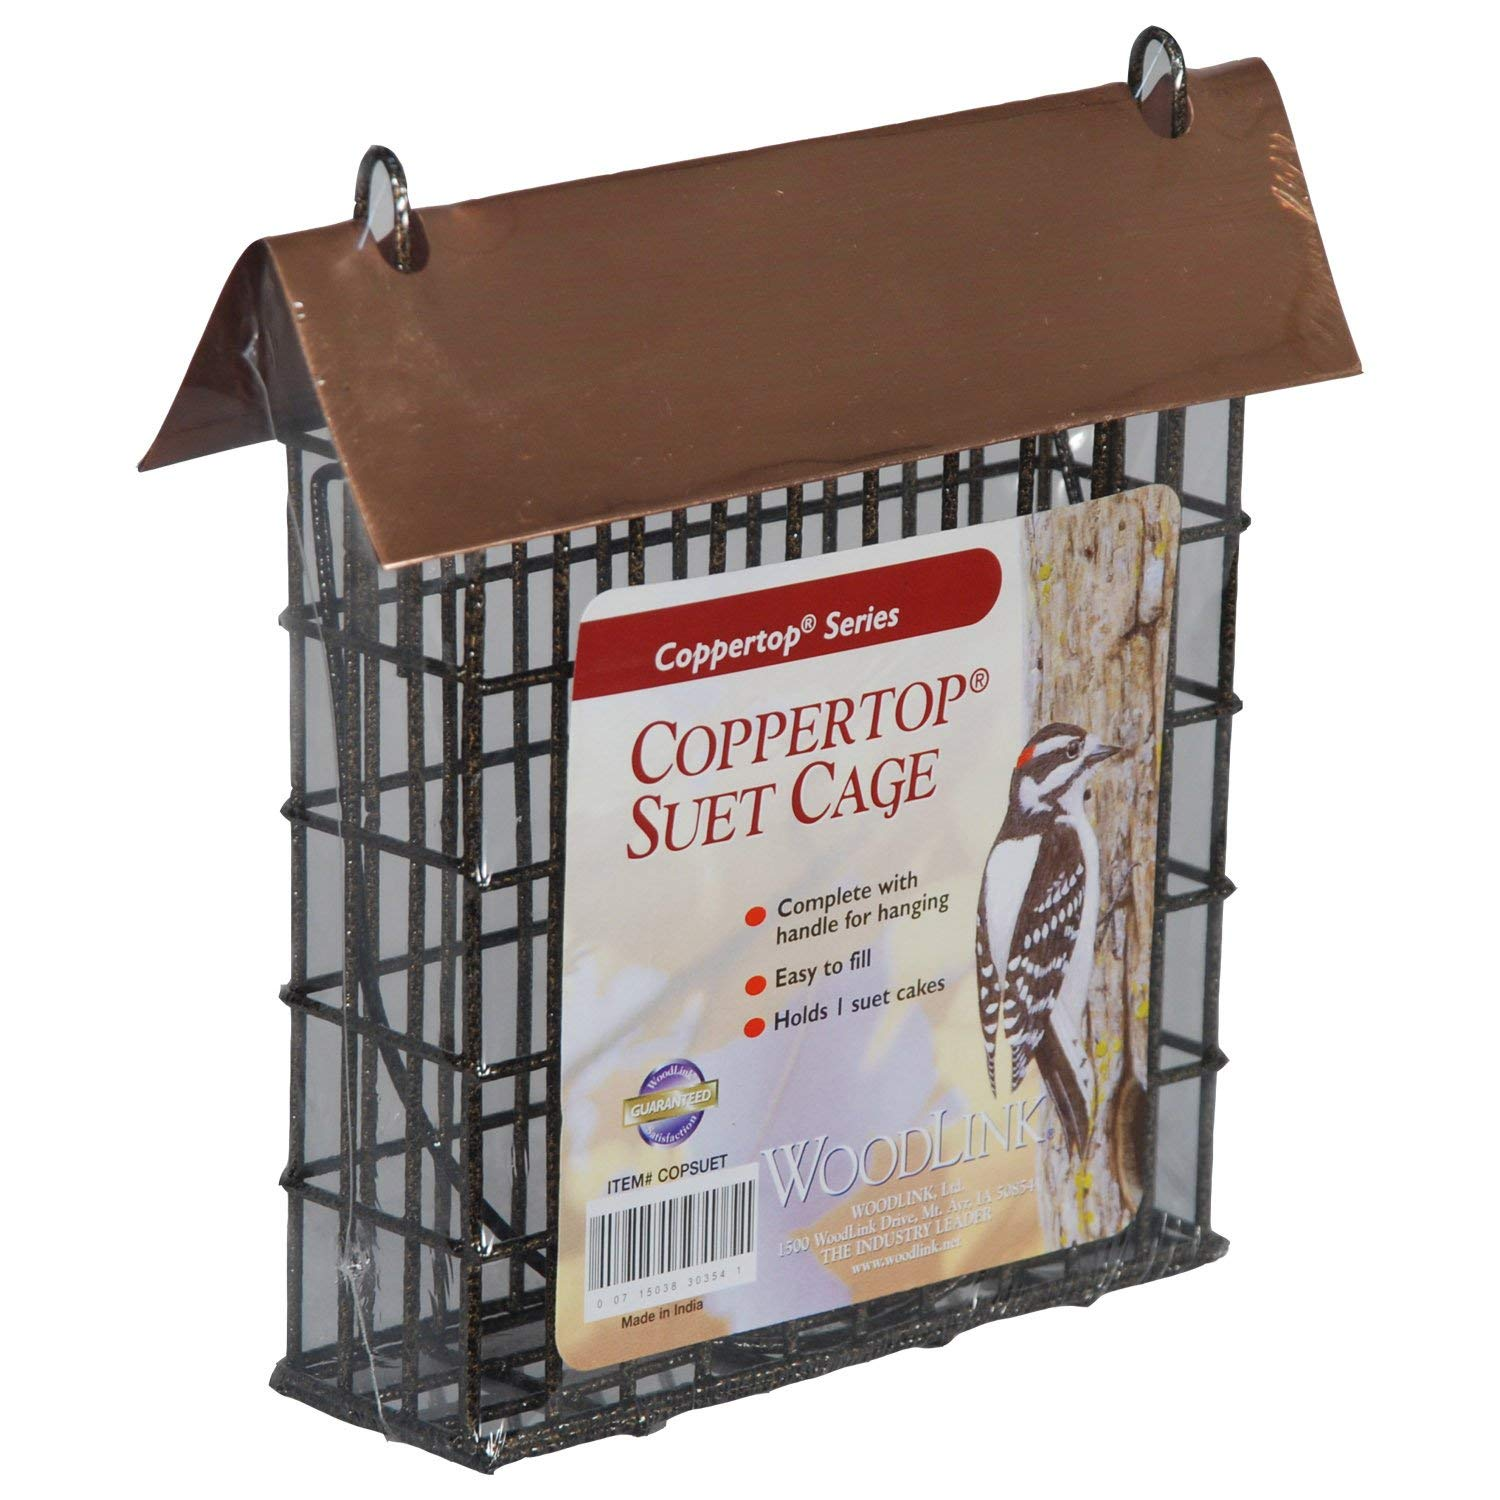 Coppertop Single Suet Cage Model COPSUET, Woodlink Coppertop Suet Feeder diamond shape attracts a variety of tree clinging birds By Woodlink